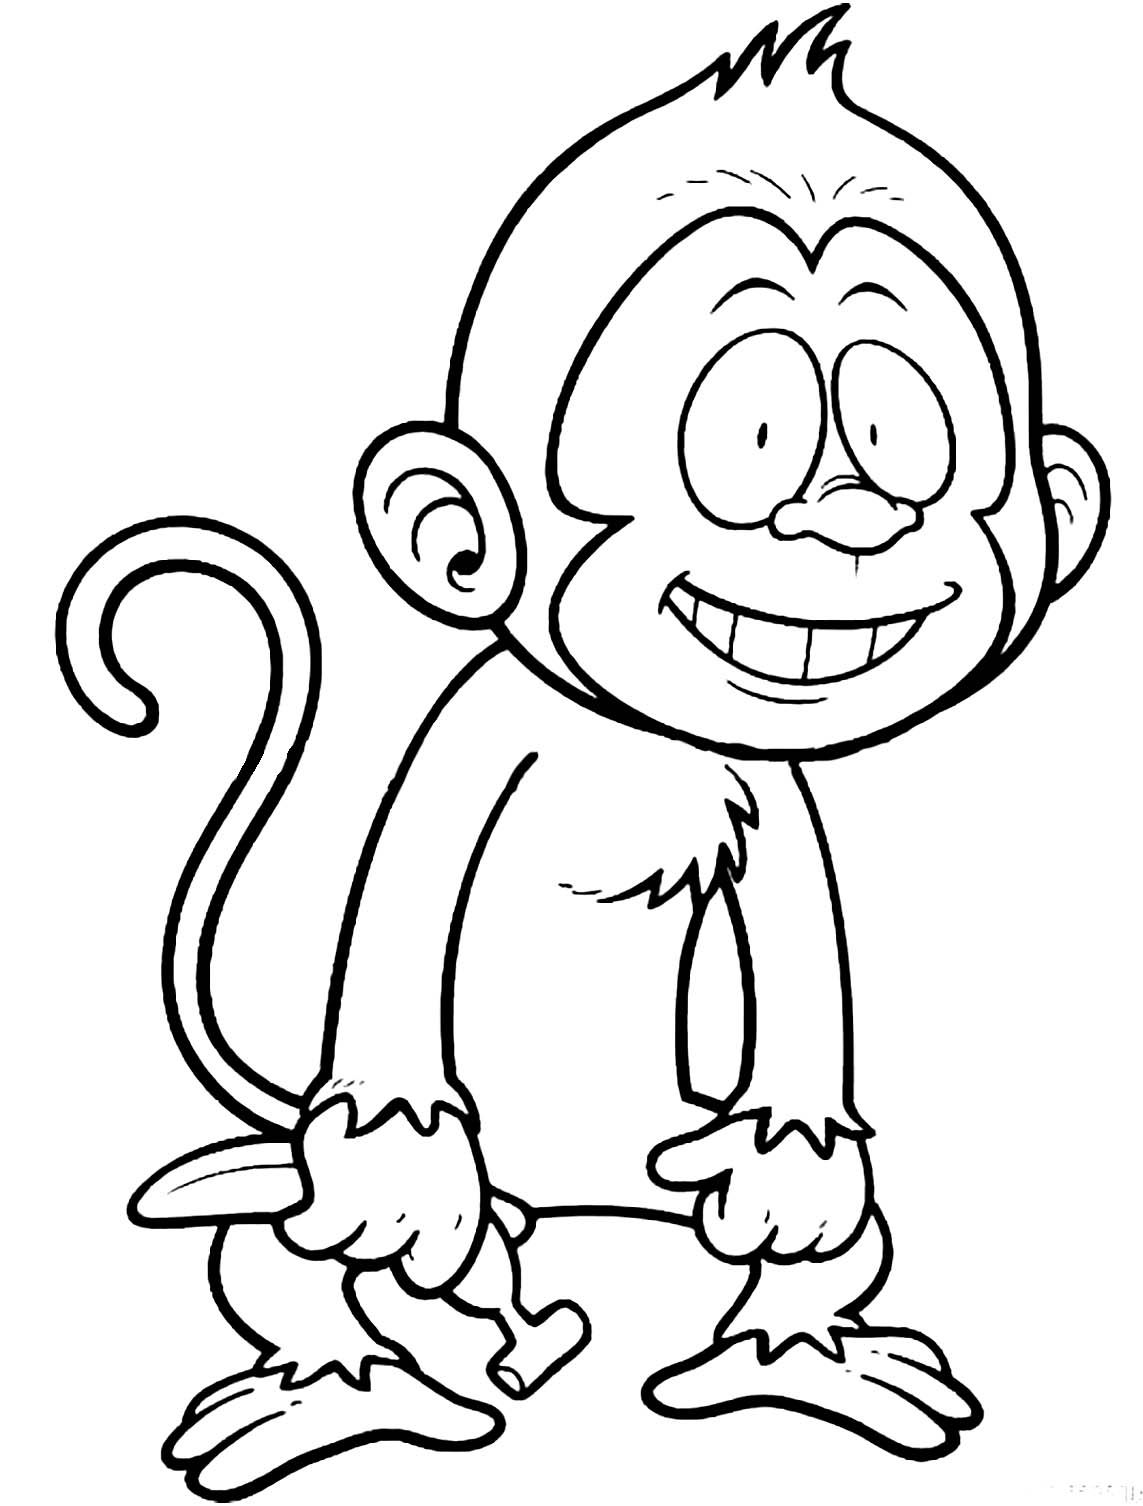 monkey pictures for coloring print download coloring monkey head with monkey pictures monkey for coloring